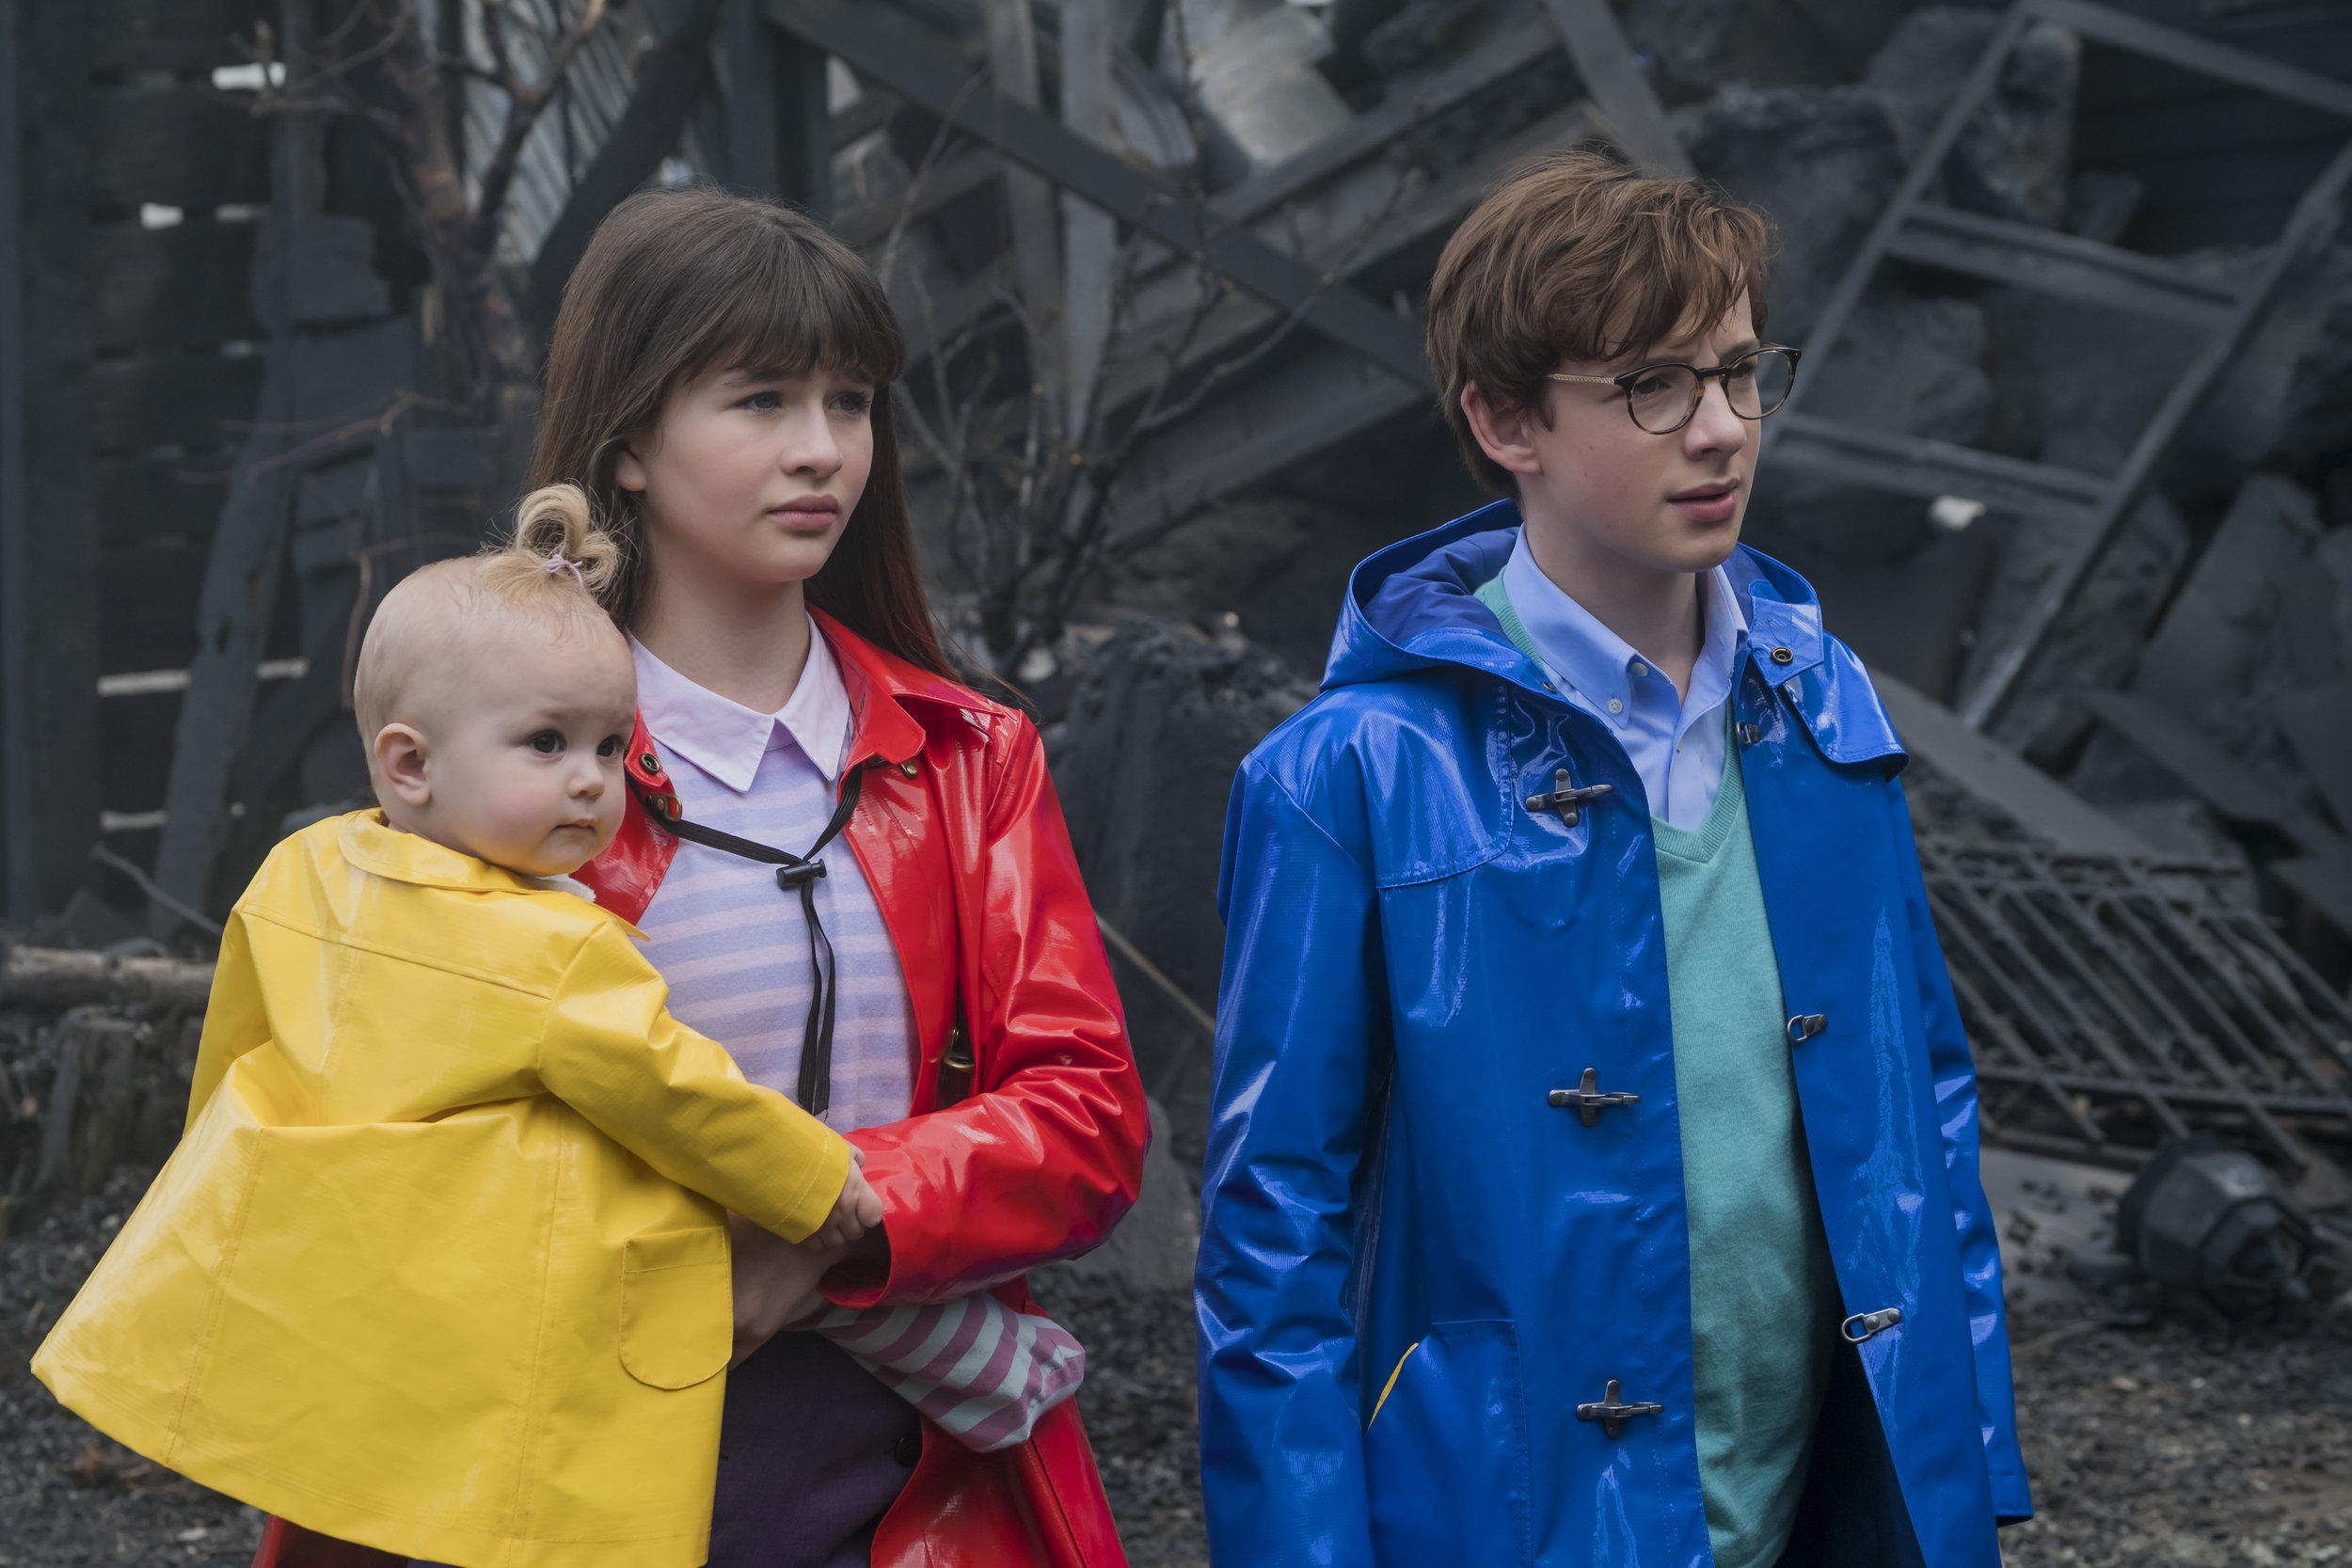 Lemony Snicket's 'A Series of Unfortunate Events' on Netflix